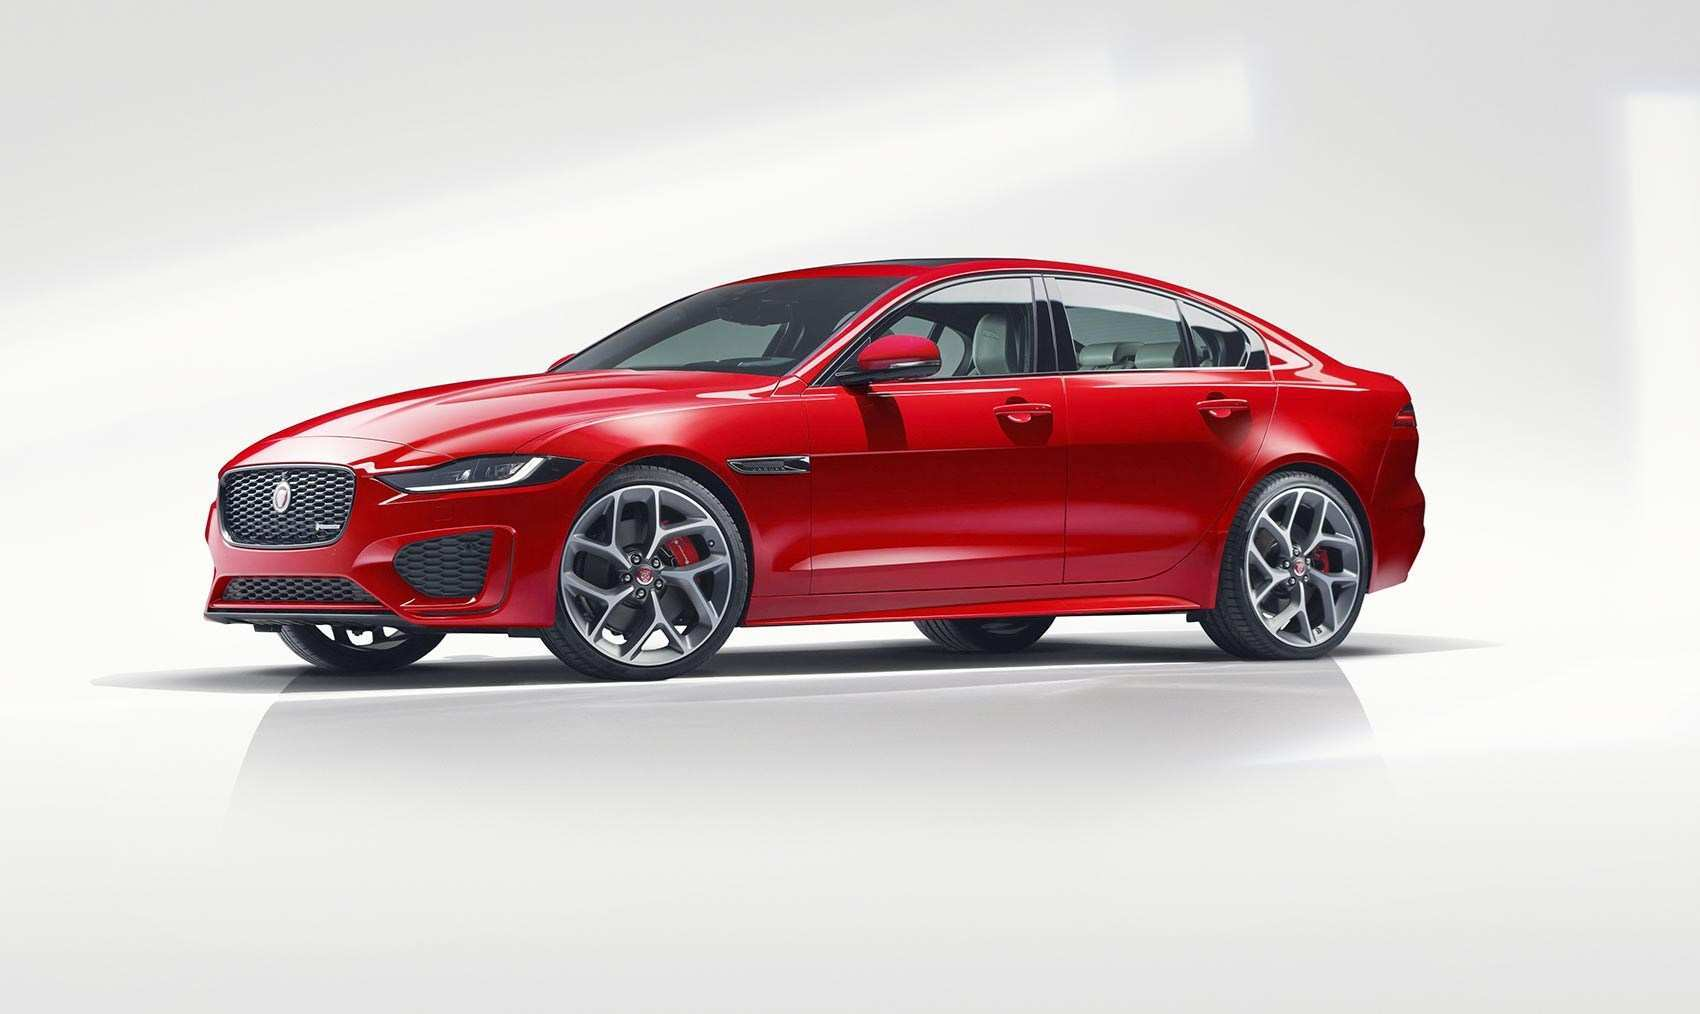 93 New The Jaguar New Cars 2019 Price Exterior with The Jaguar New Cars 2019 Price